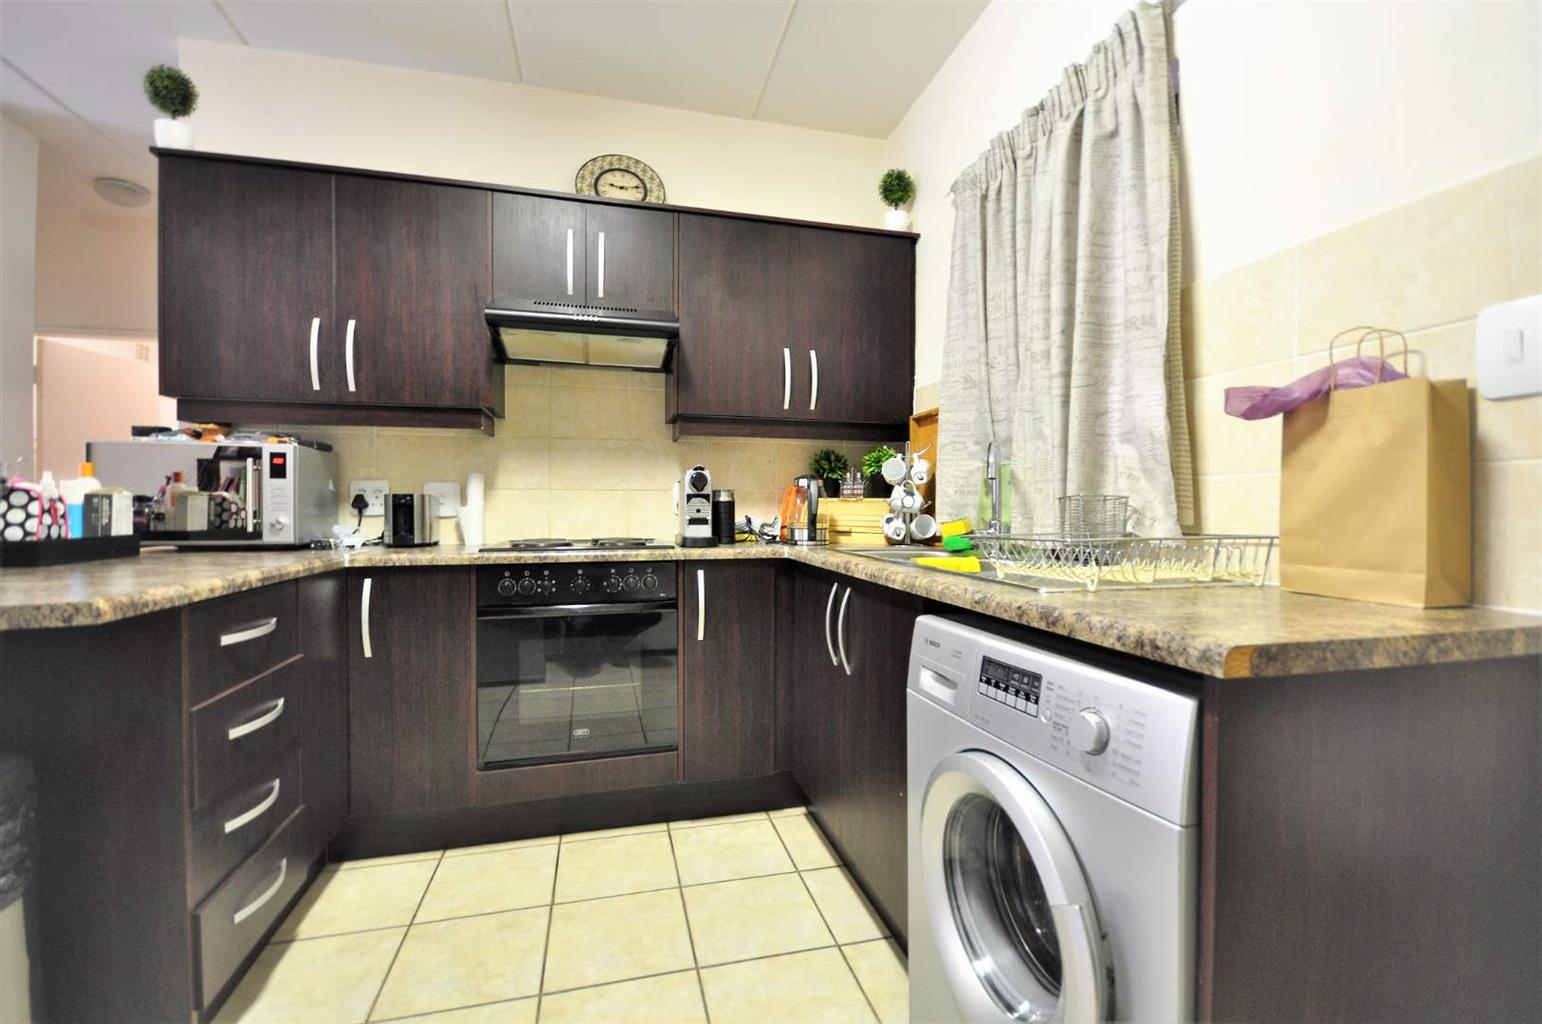 Apartment Rental Monthly in North Riding